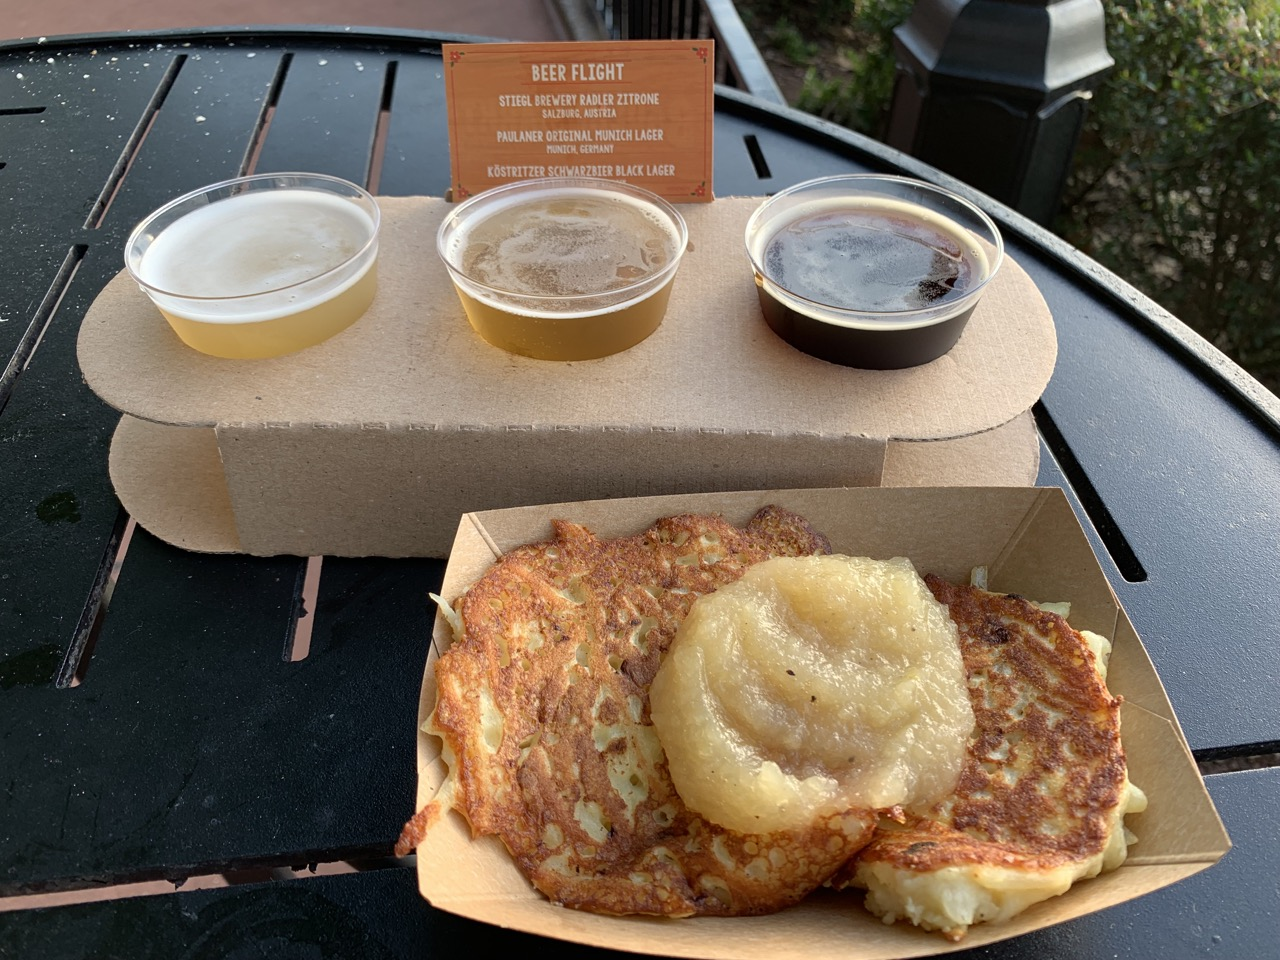 disney world trip report early summer 2019 day four 42 food.jpeg